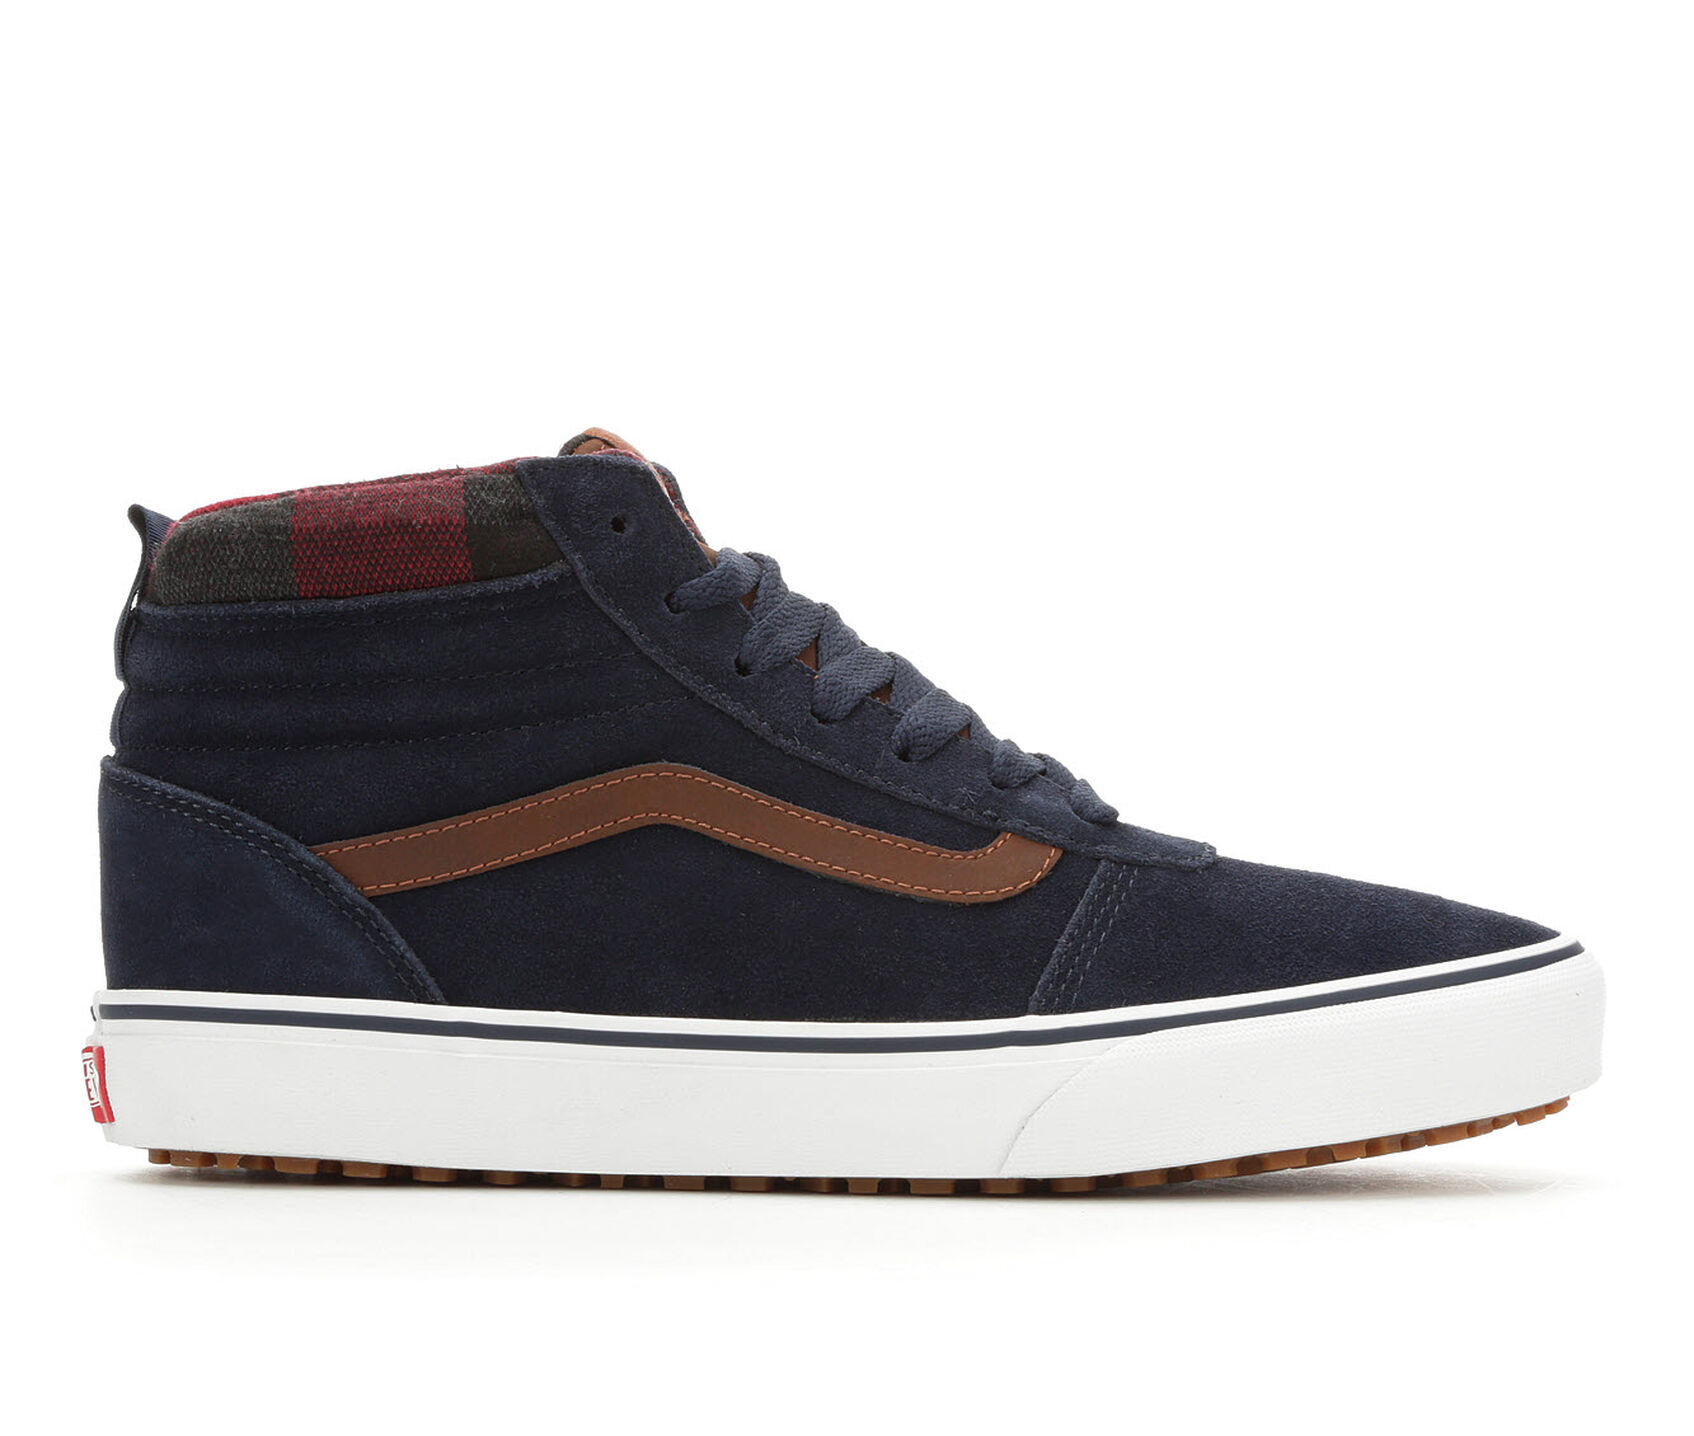 22334459ed Men's Vans Ward Hi MTE Skate Shoes